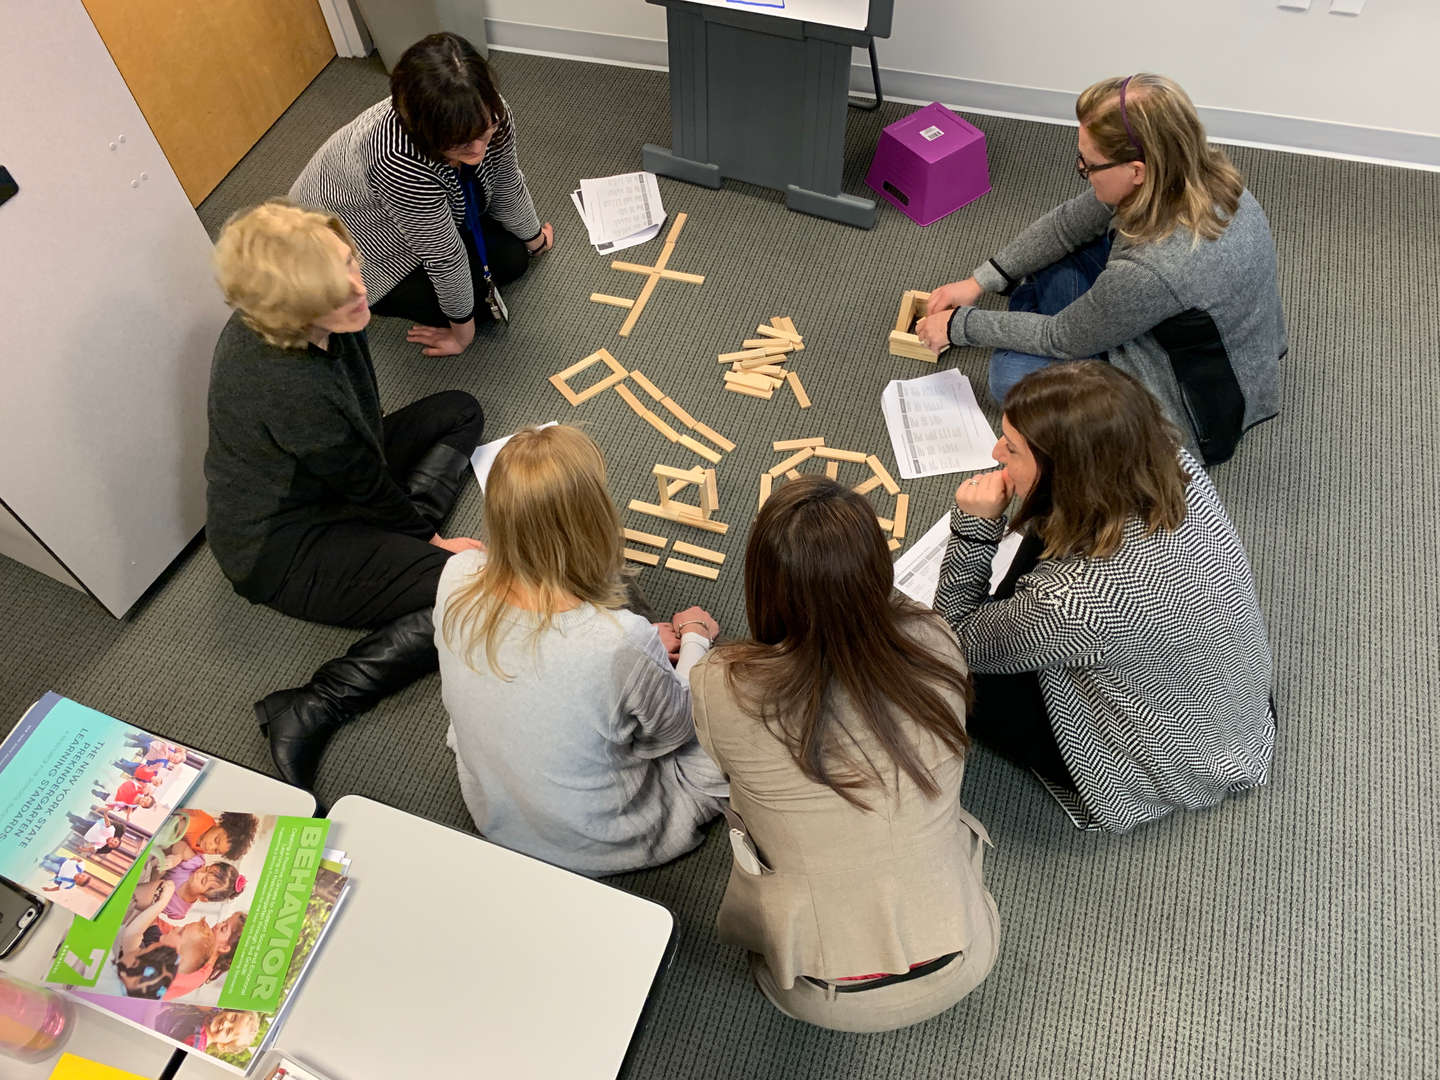 Group work with wooden sticks